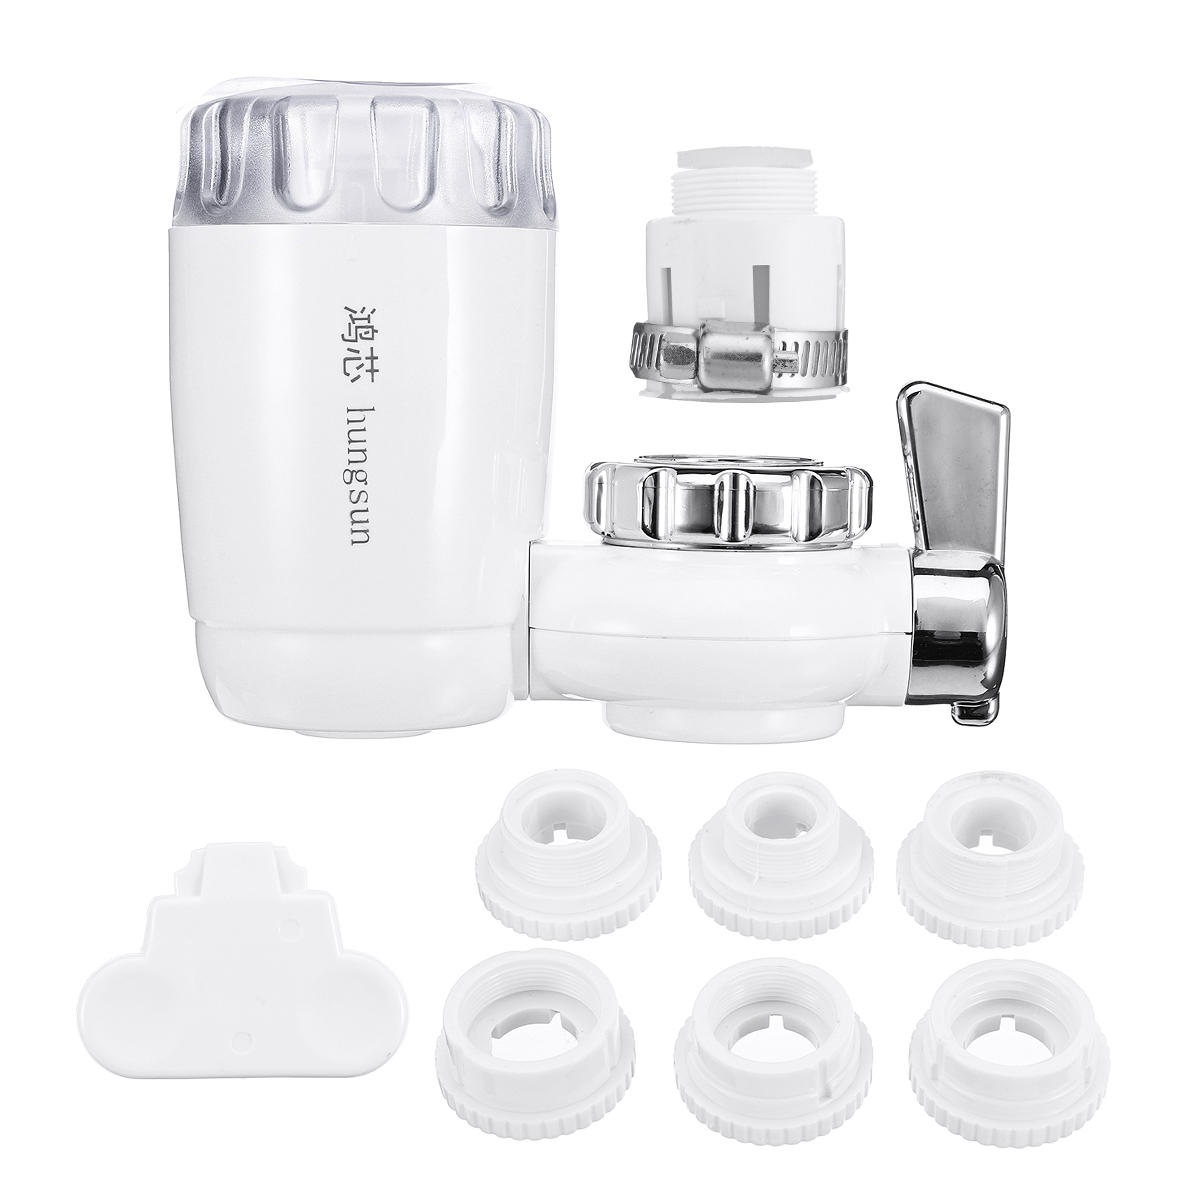 Home Kitchen Drinking 8-Stage On-Tap Water Filters Purifier Faucet Filtration System